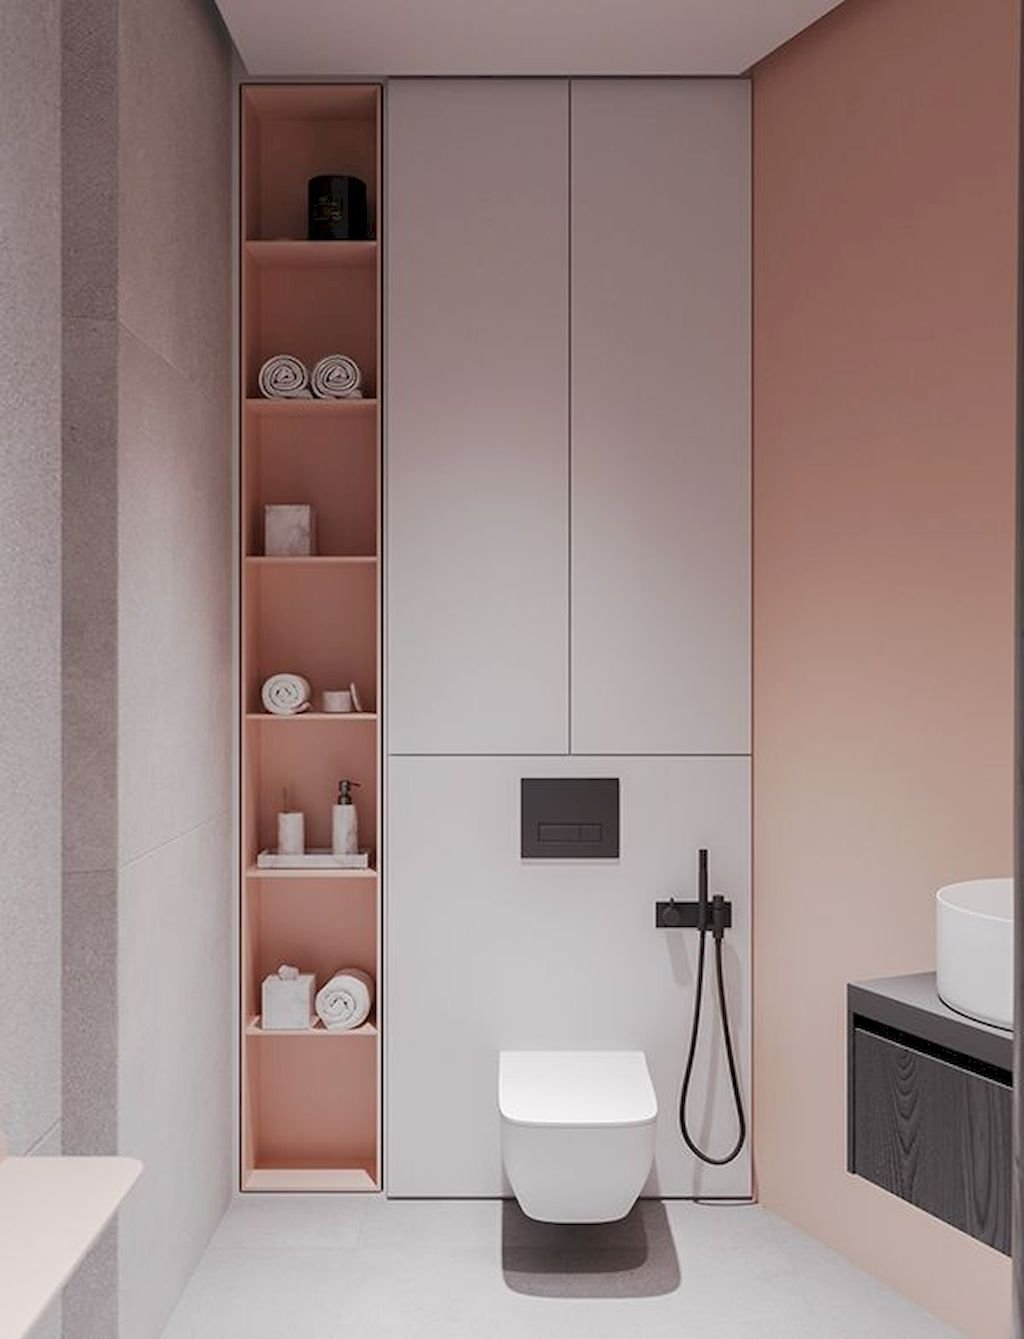 Prodigious Stylish Color Scheme For Your Bathroom